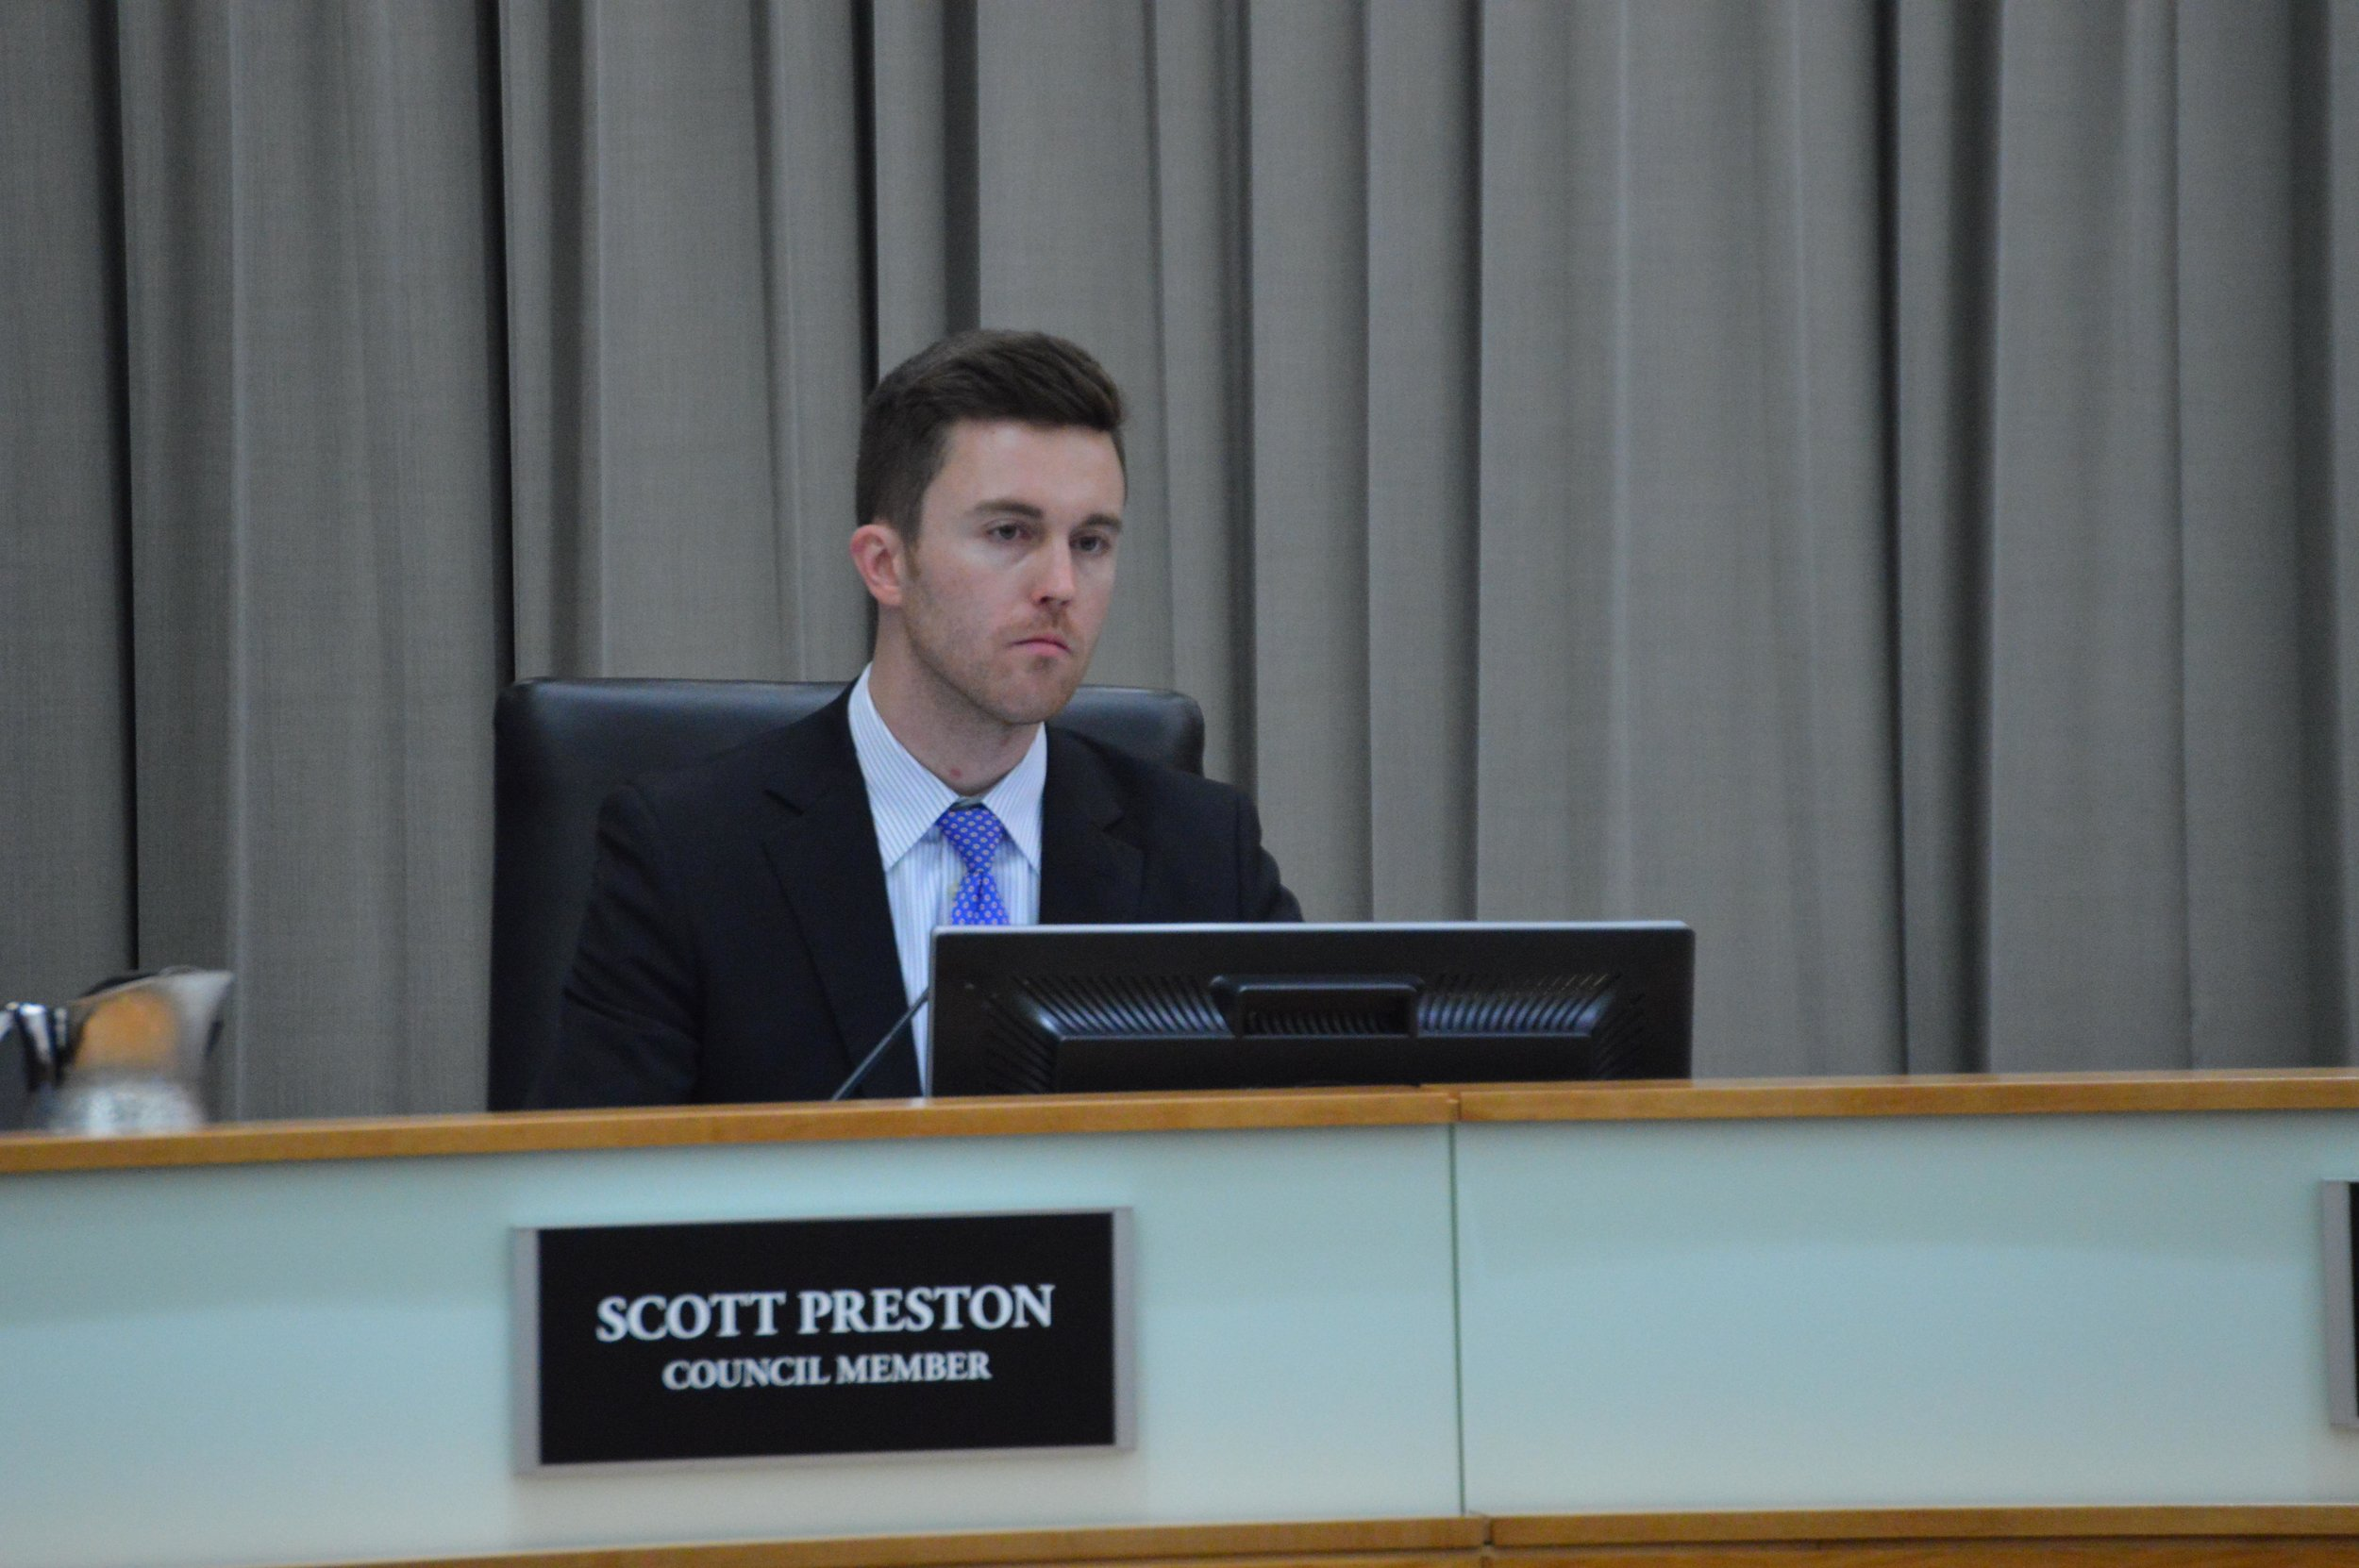 Normal Town Council members voted six to one on Monday in favor of the Ecology Action Center's 20-year waste management plan. (Image credit: Christian Prenzler)